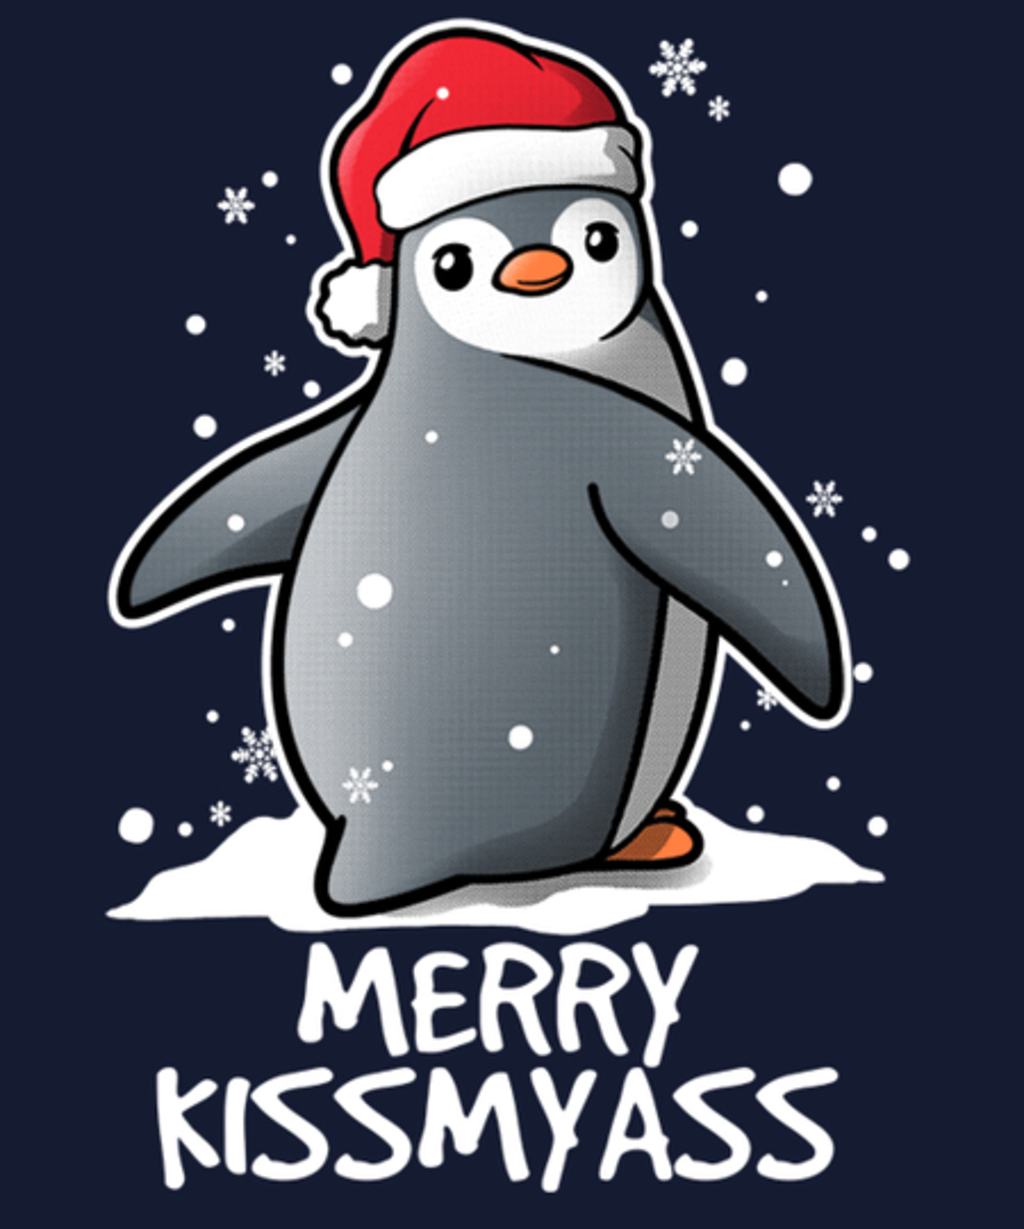 Qwertee: Penguin Merry kissmyass